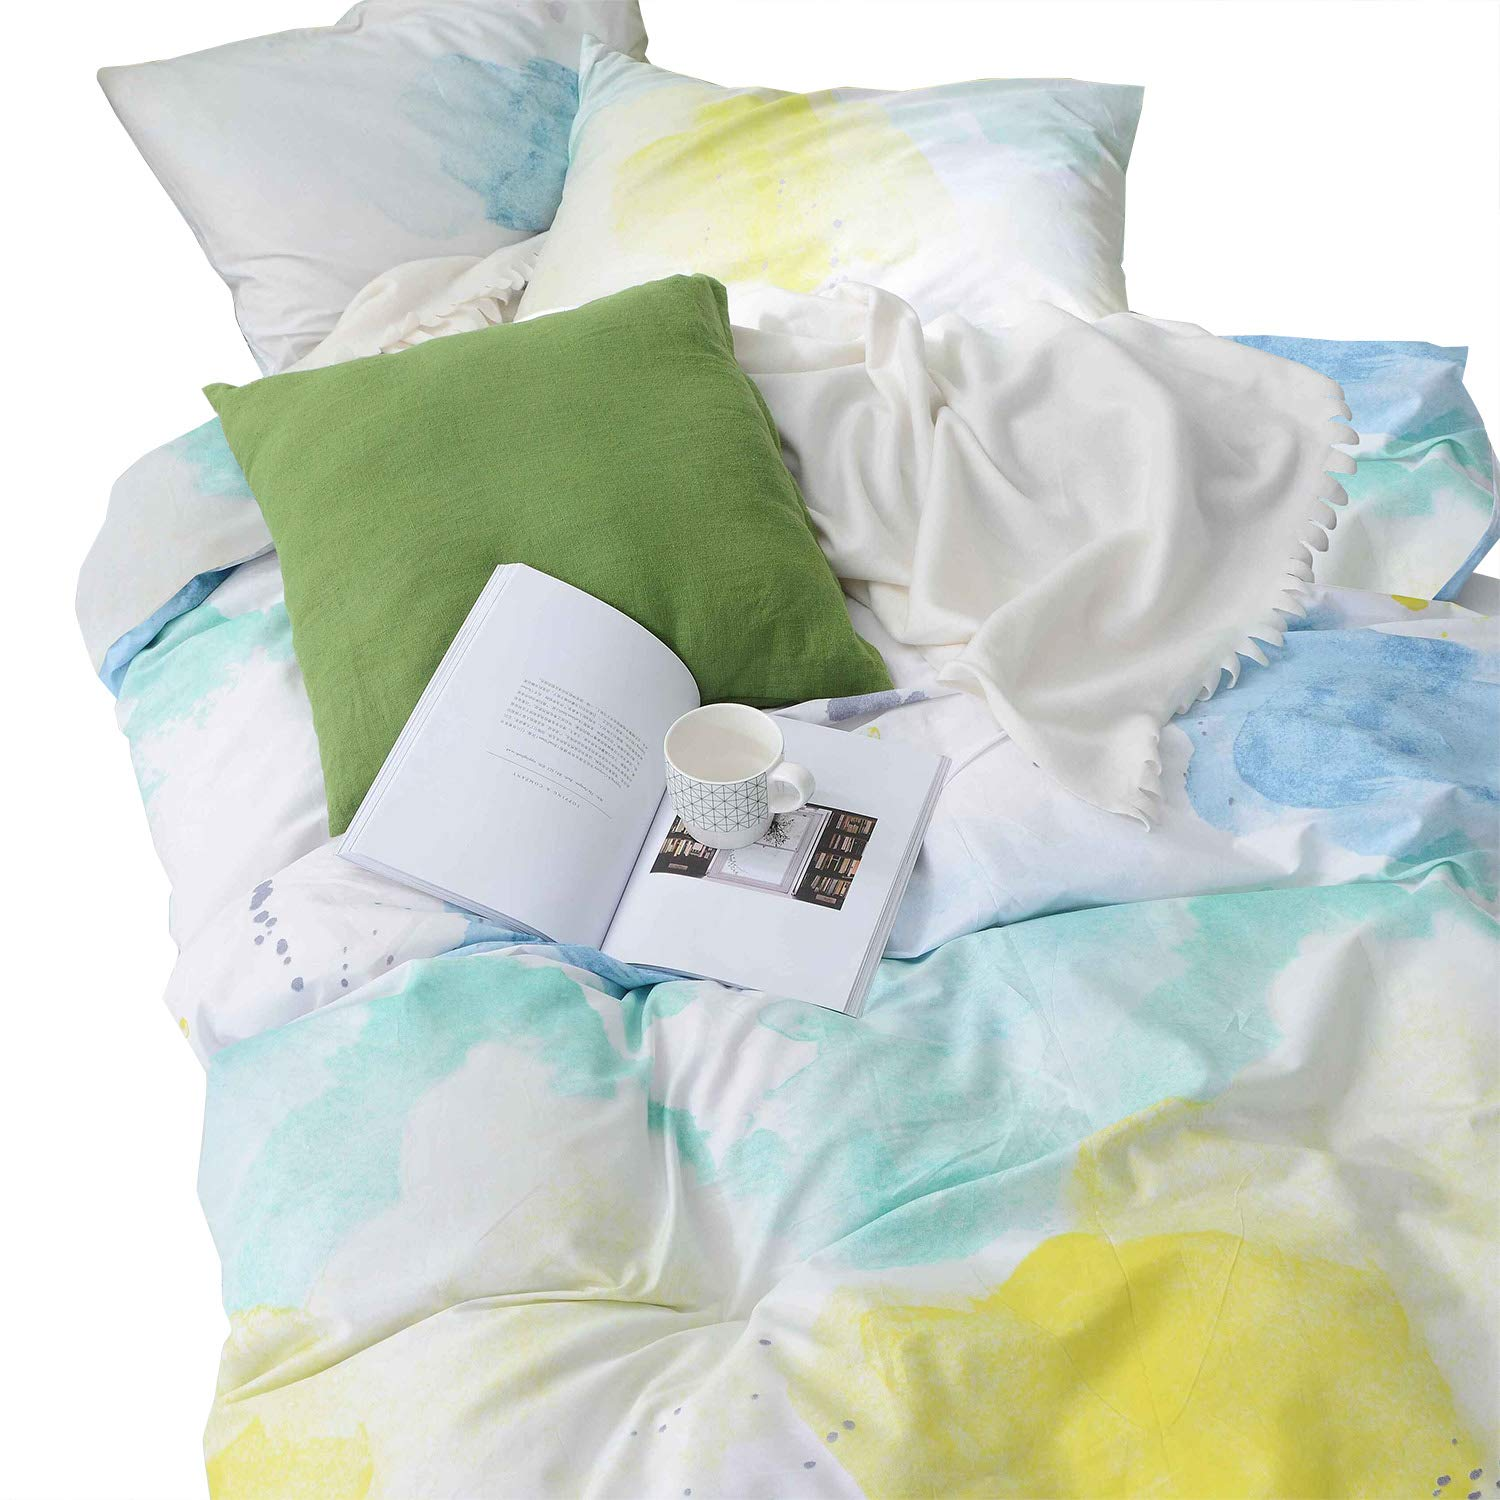 Wake In Cloud - Watercolor Duvet Cover Set, 100% Cotton Bedding, Teal Blue Yellow Gray Painting Pattern Printed on White, with Zipper Closure (3pcs, Queen Size)